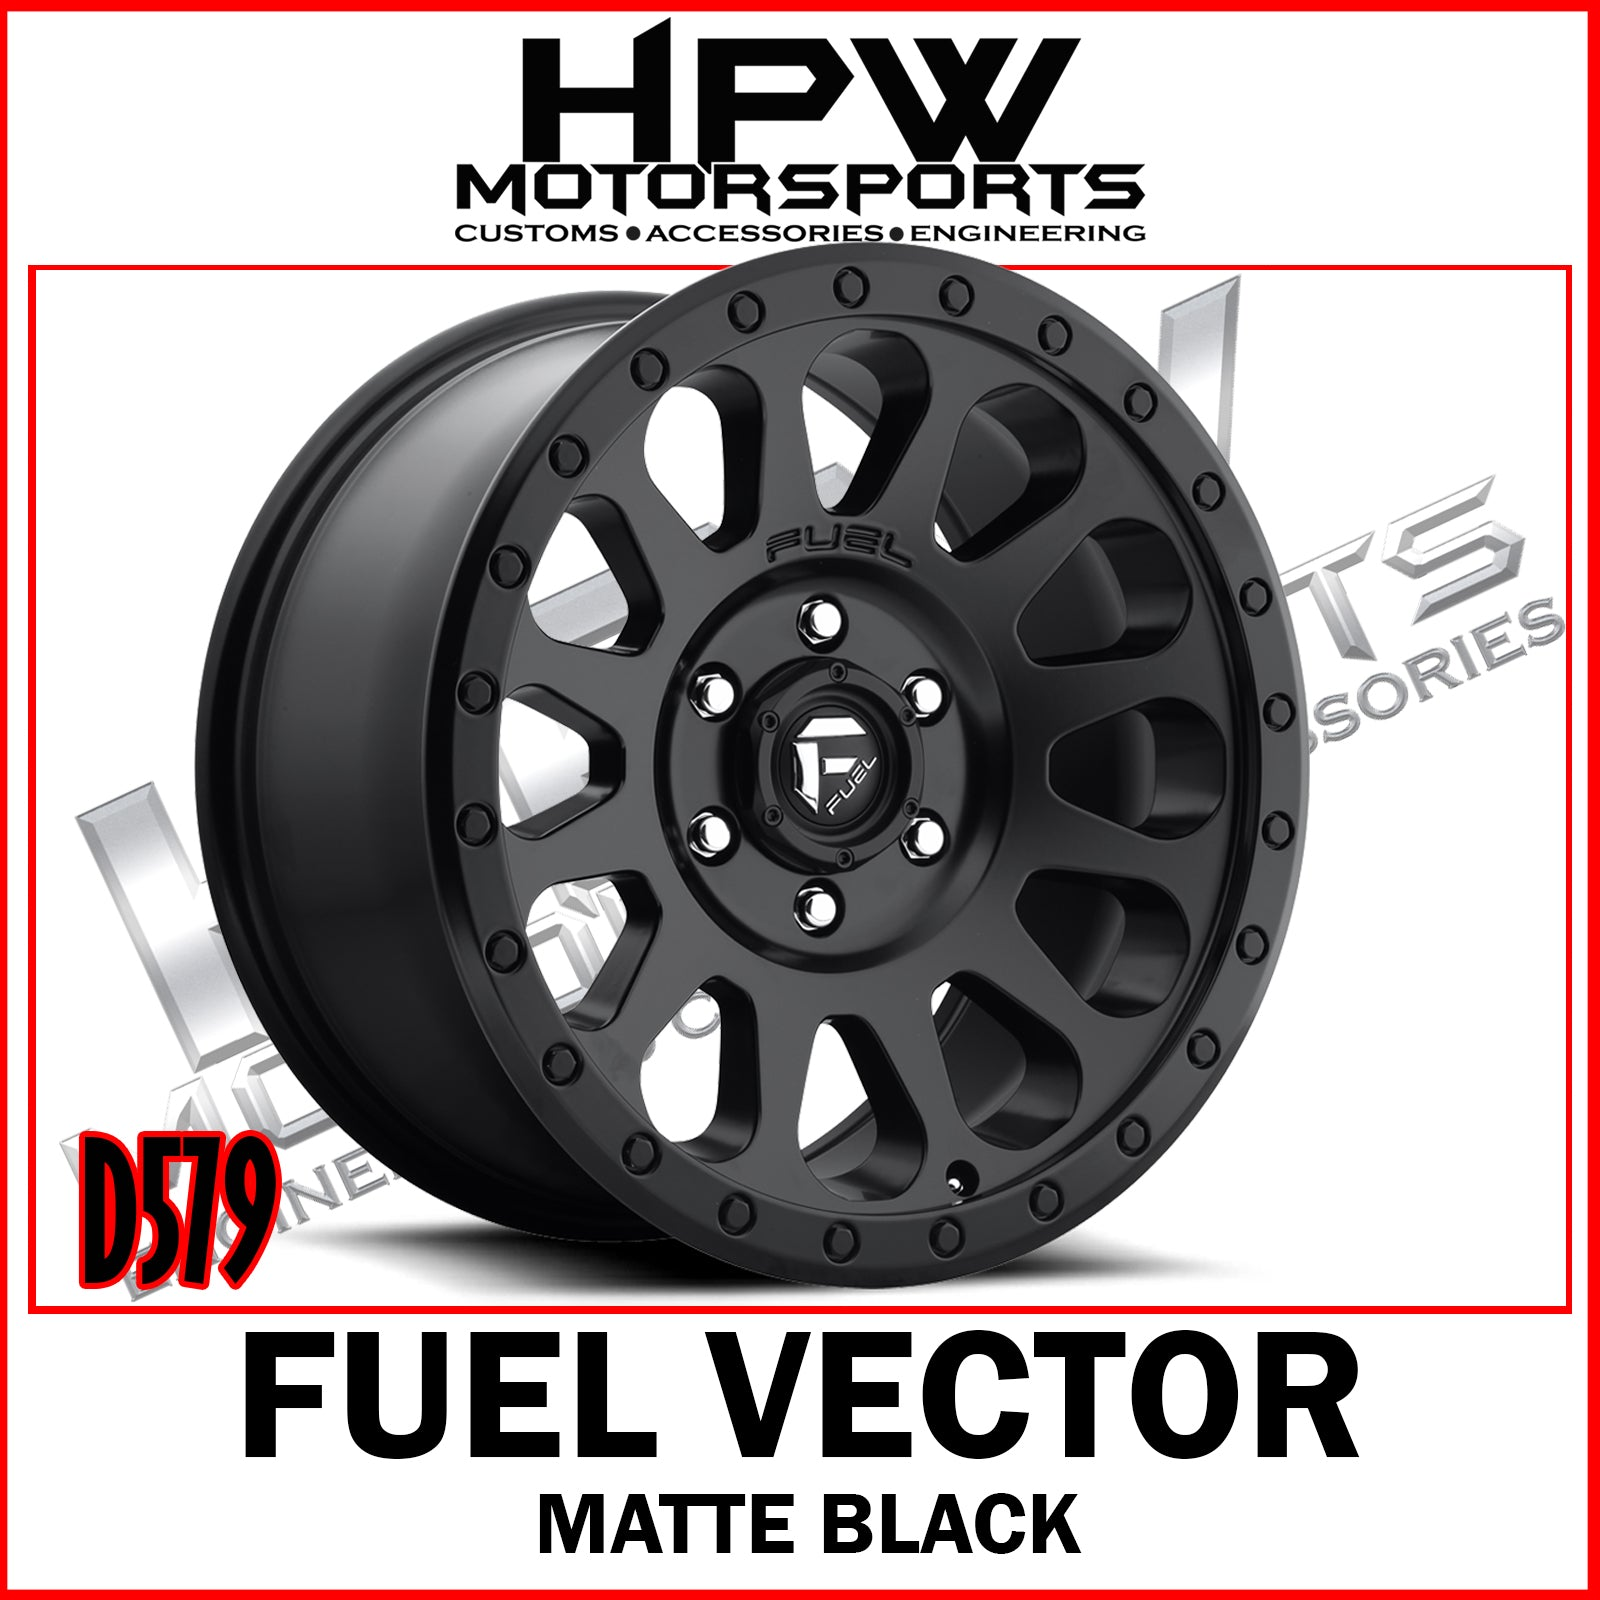 (20X10 -18) D579 FUEL VECTOR - MATTE BLACK - Set of 4